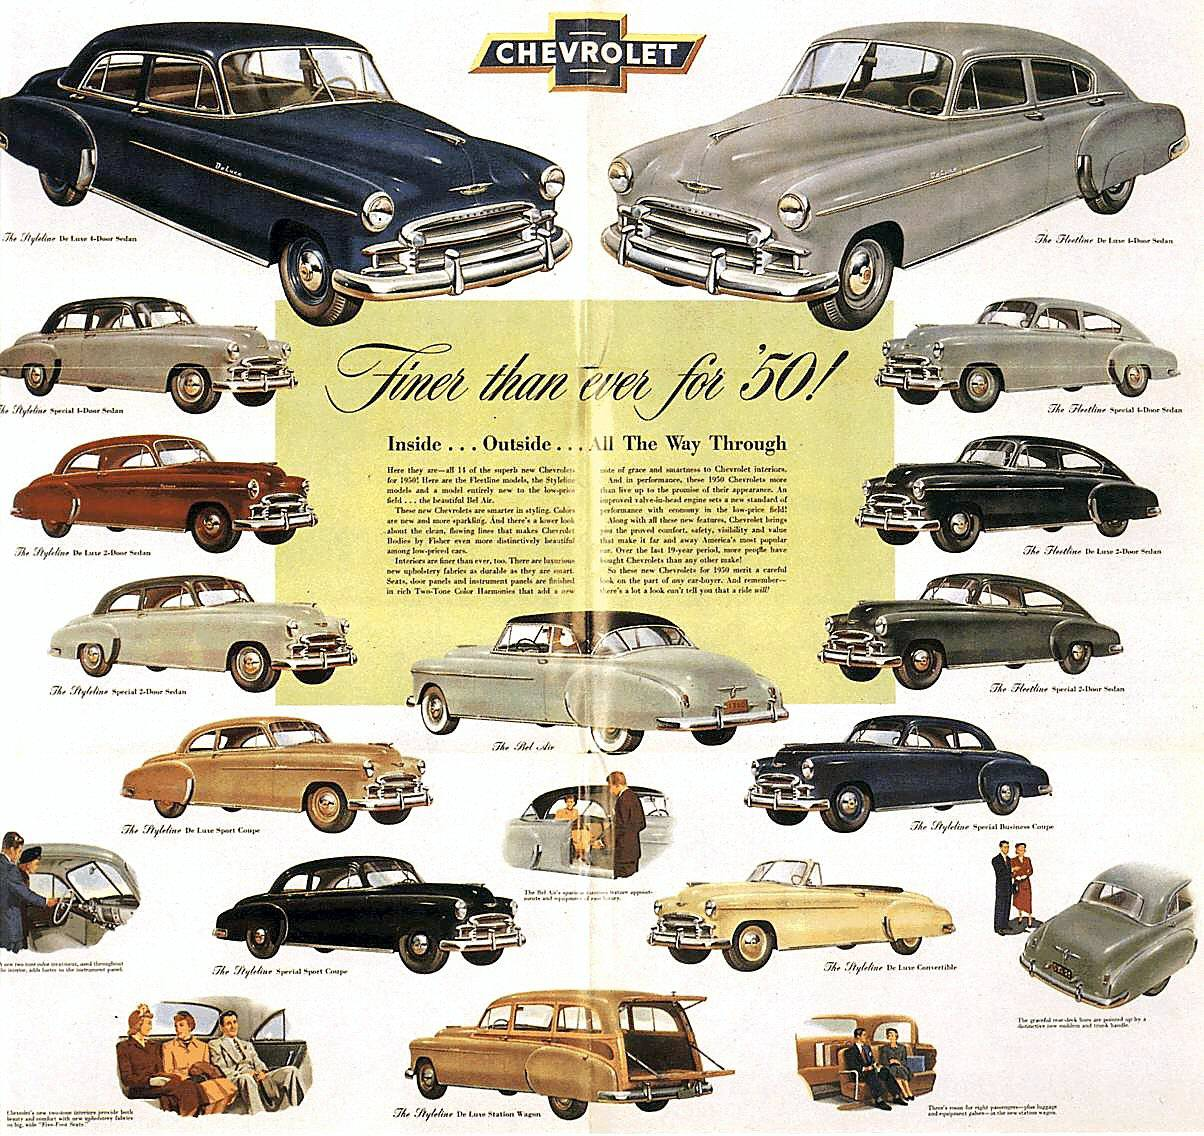 1950 Chevrolet brochure The Old Car Manual Project – Old Car Brochure